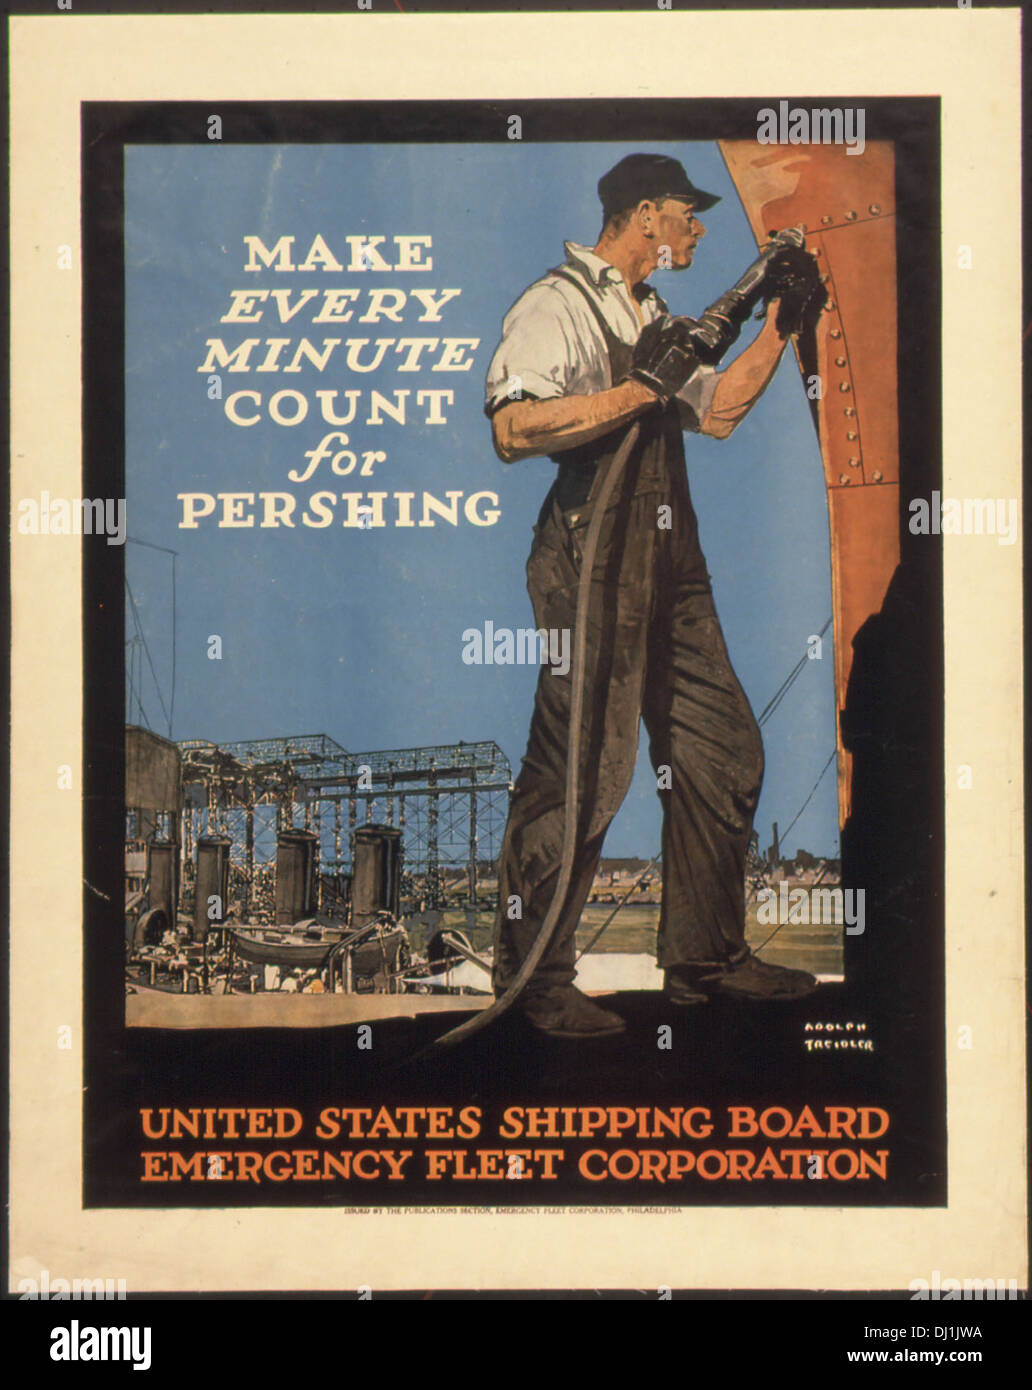 Make Every Minute Count For Pershing. Unites States Shipping Board Emergency Fleet Corporation., ca. 1917 - ca. 1919512446 - Stock Image